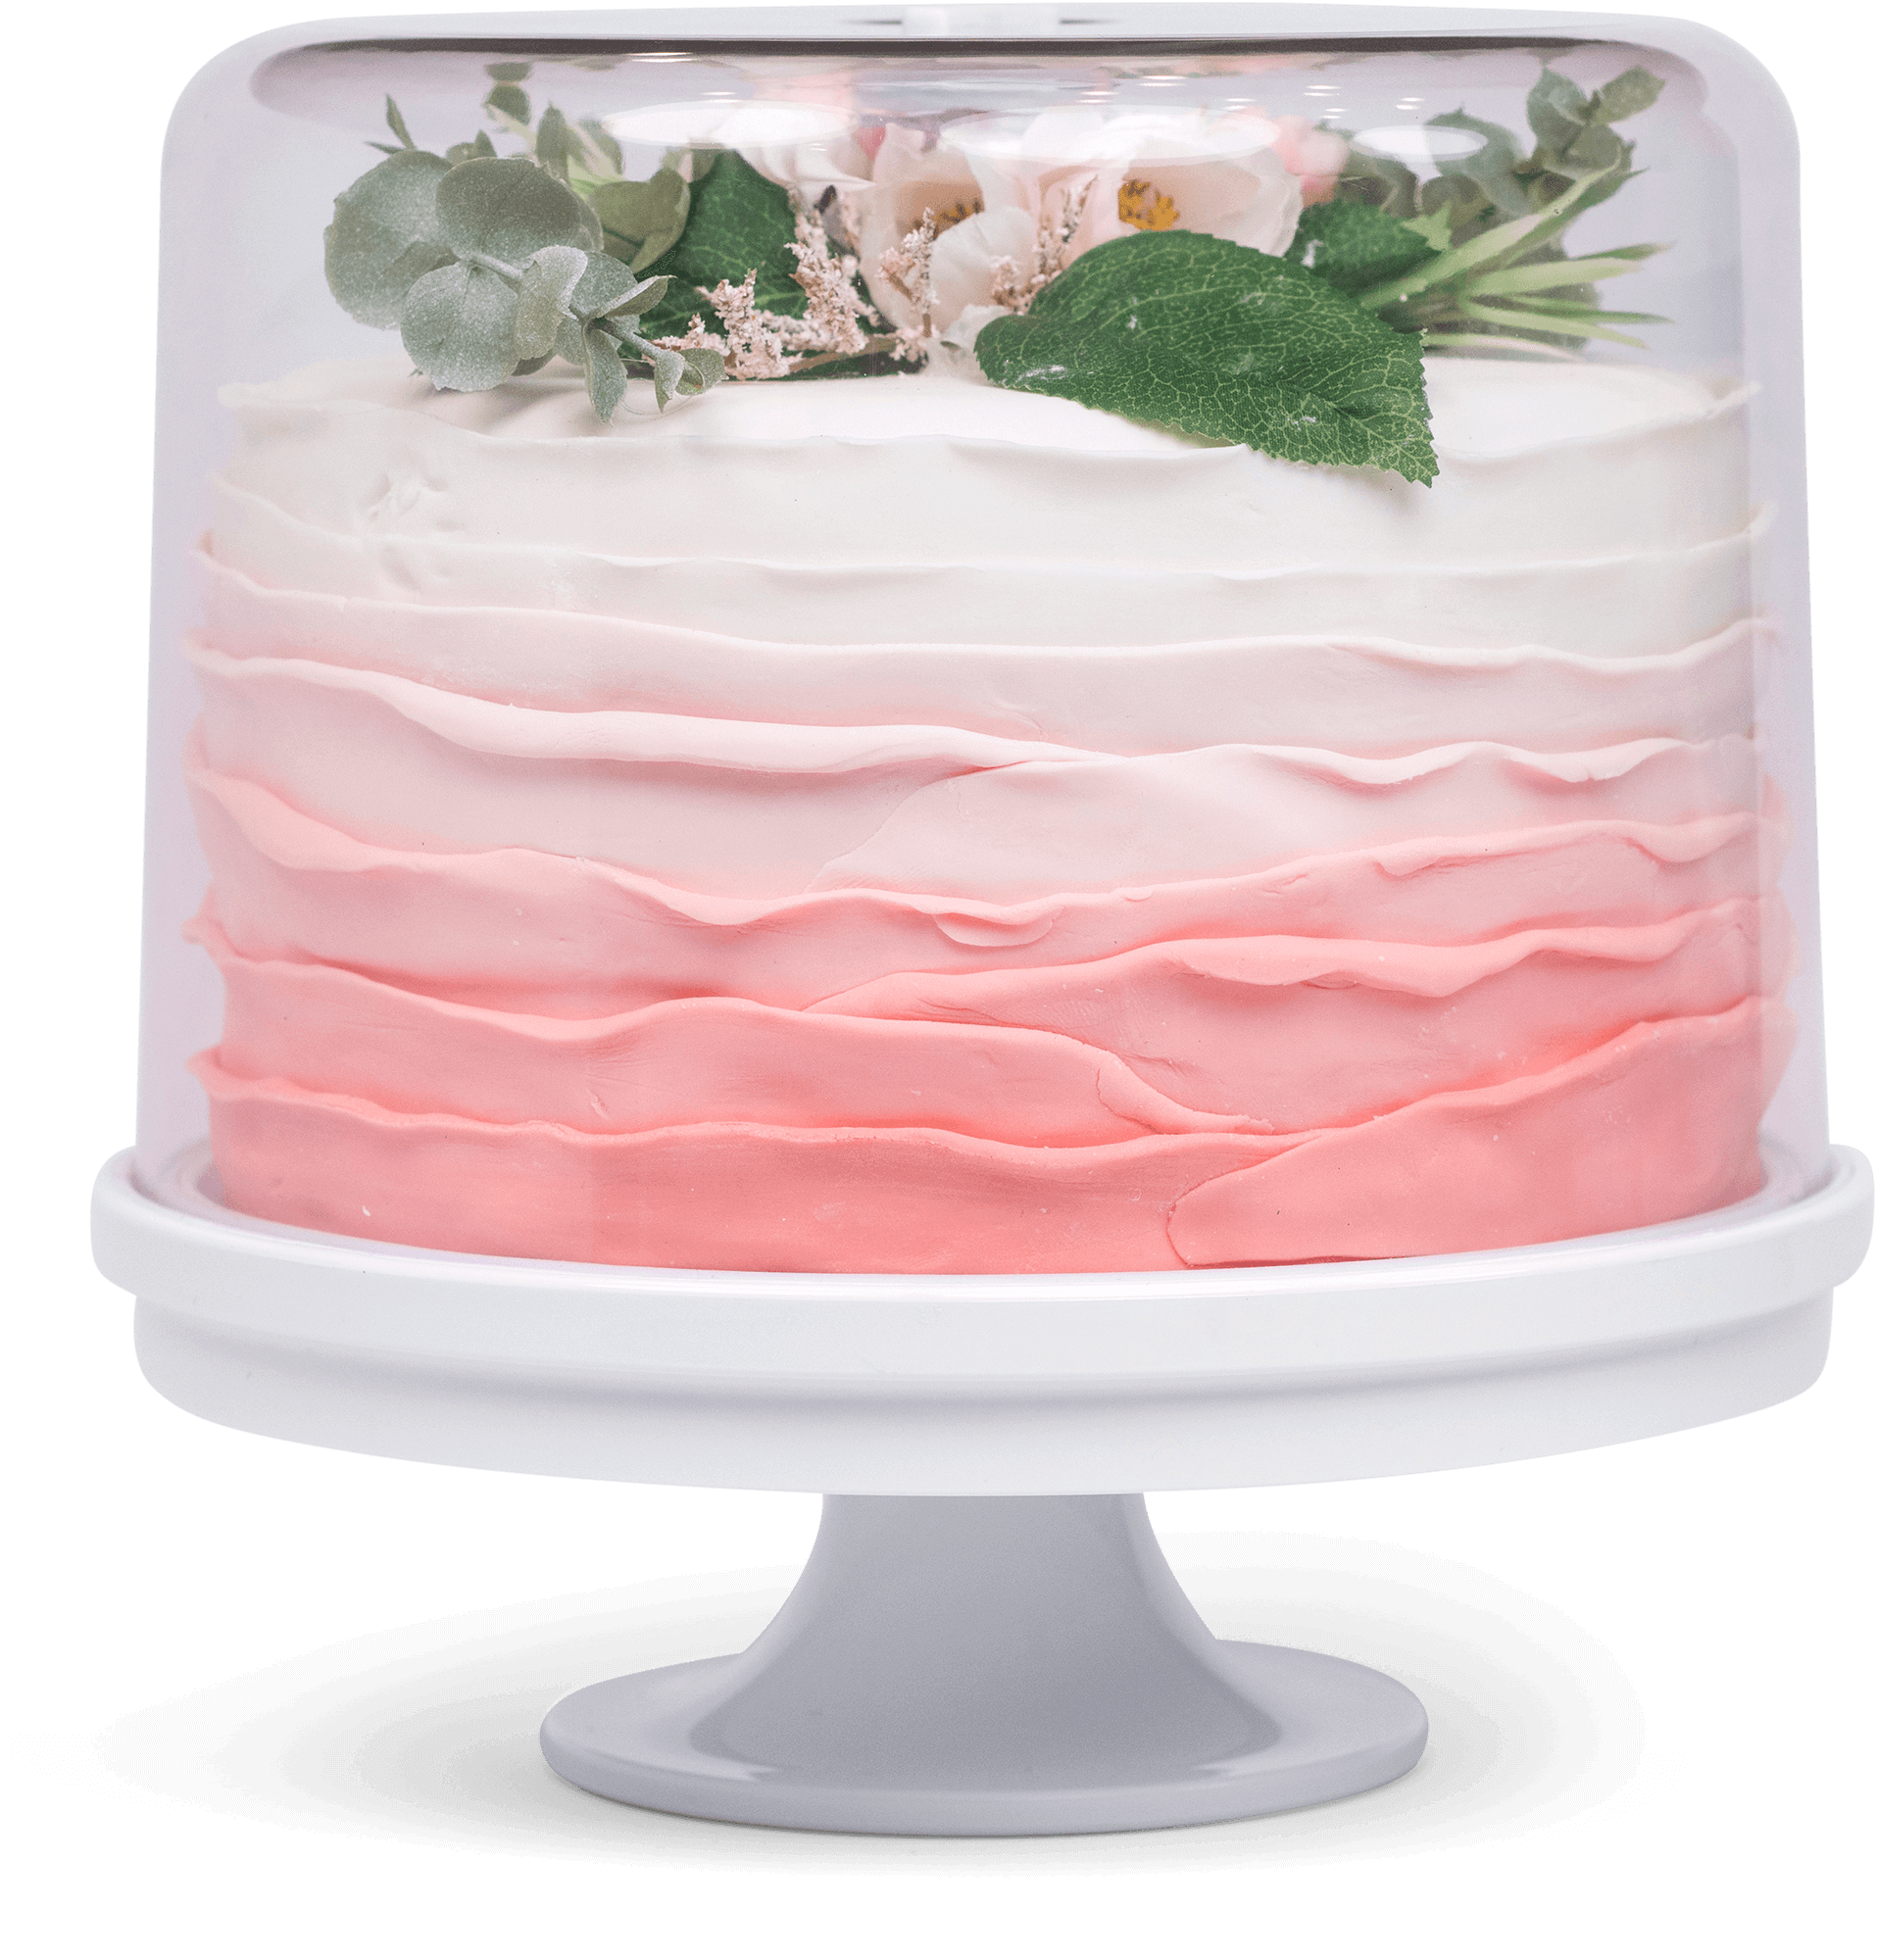 KeepCake covered on the included pedestal with a cake inside